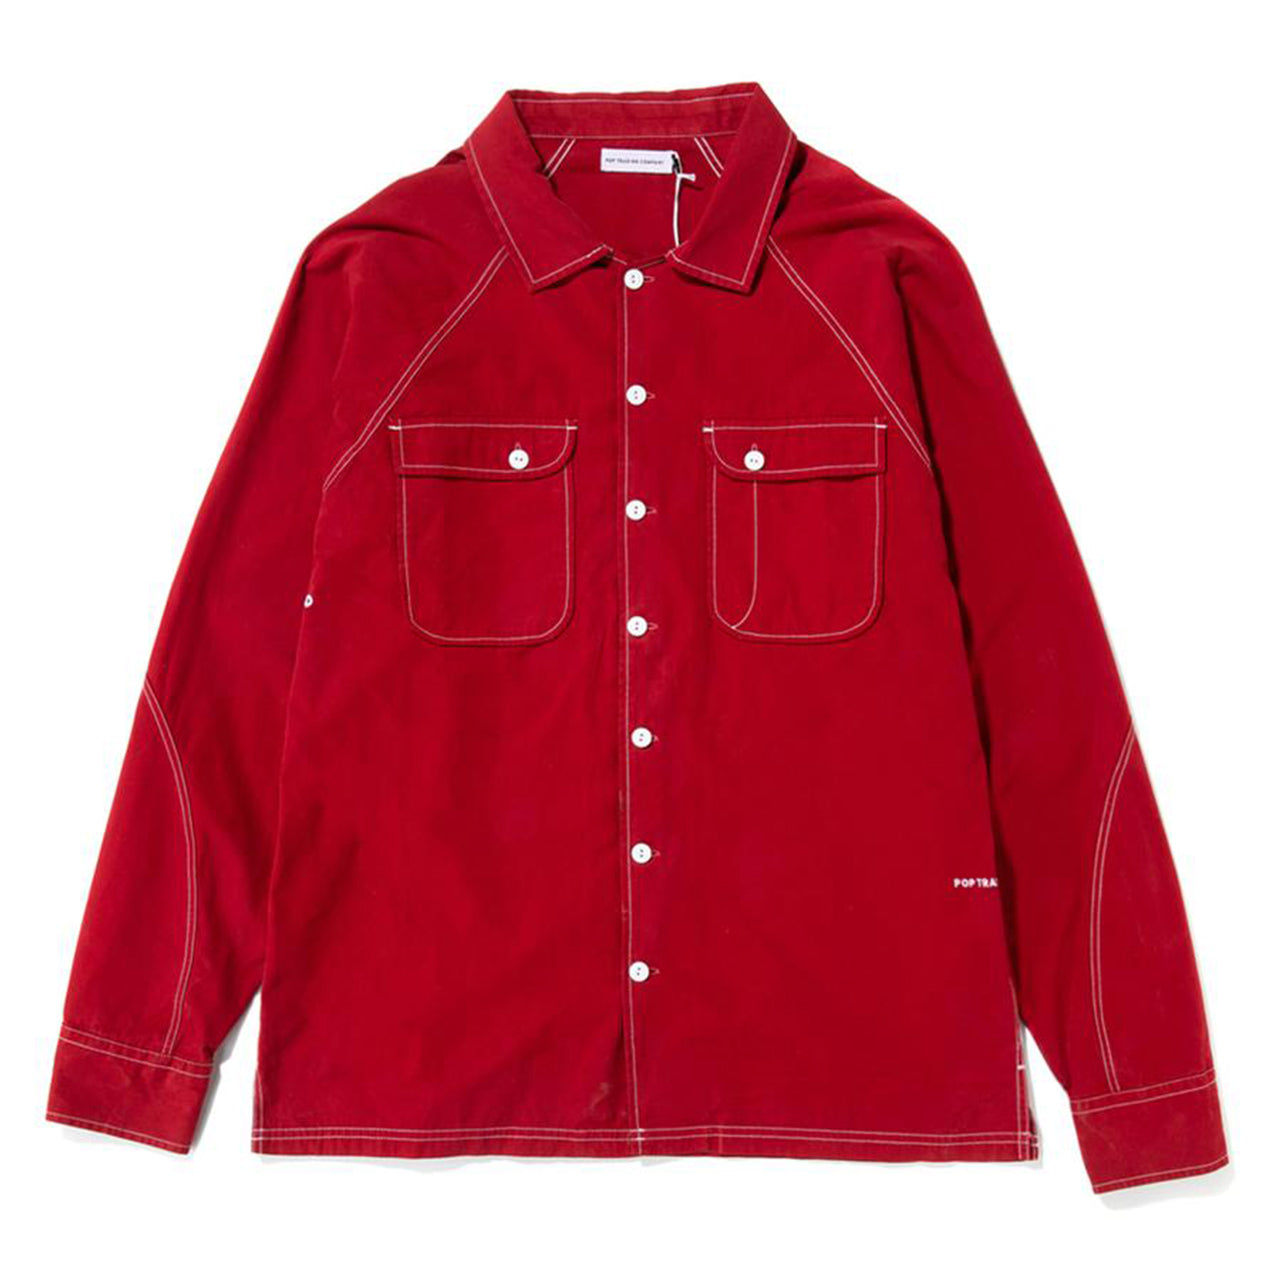 Pop Trading Company - Herman Shirt - Pepper Red